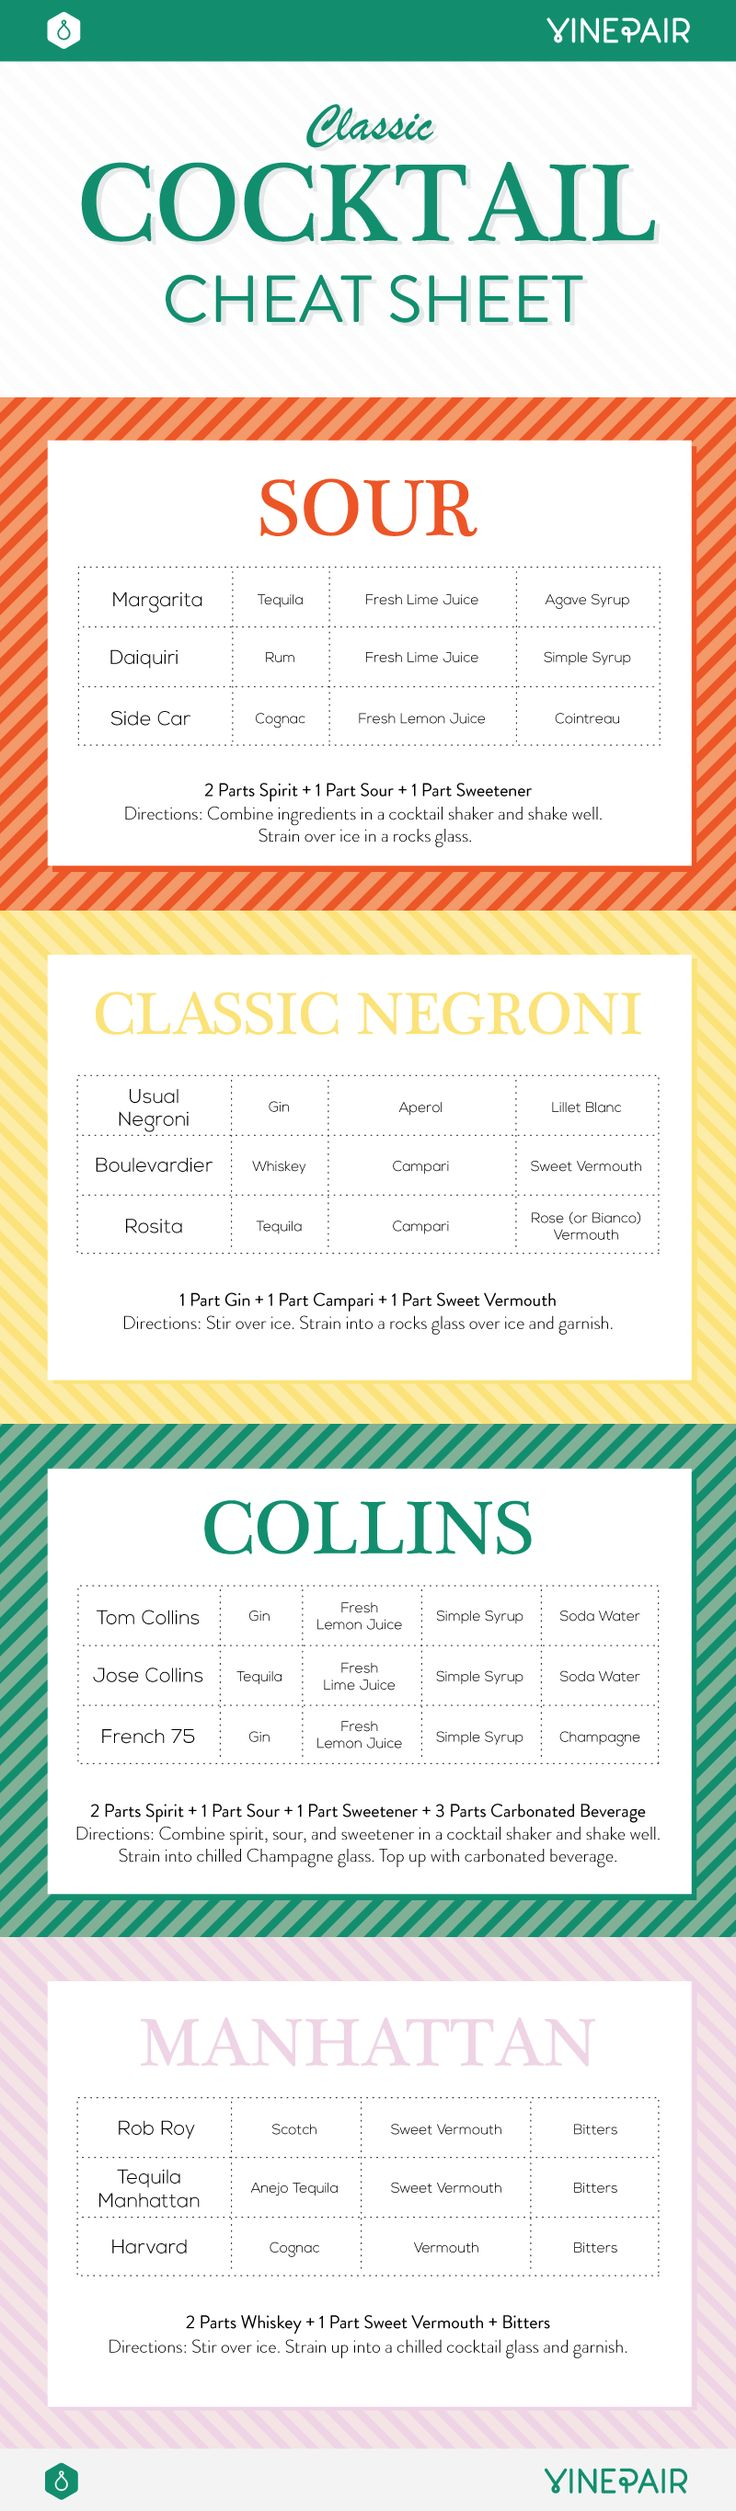 The Ultimate Cheat Sheet for Classic Cocktails [Infographic]